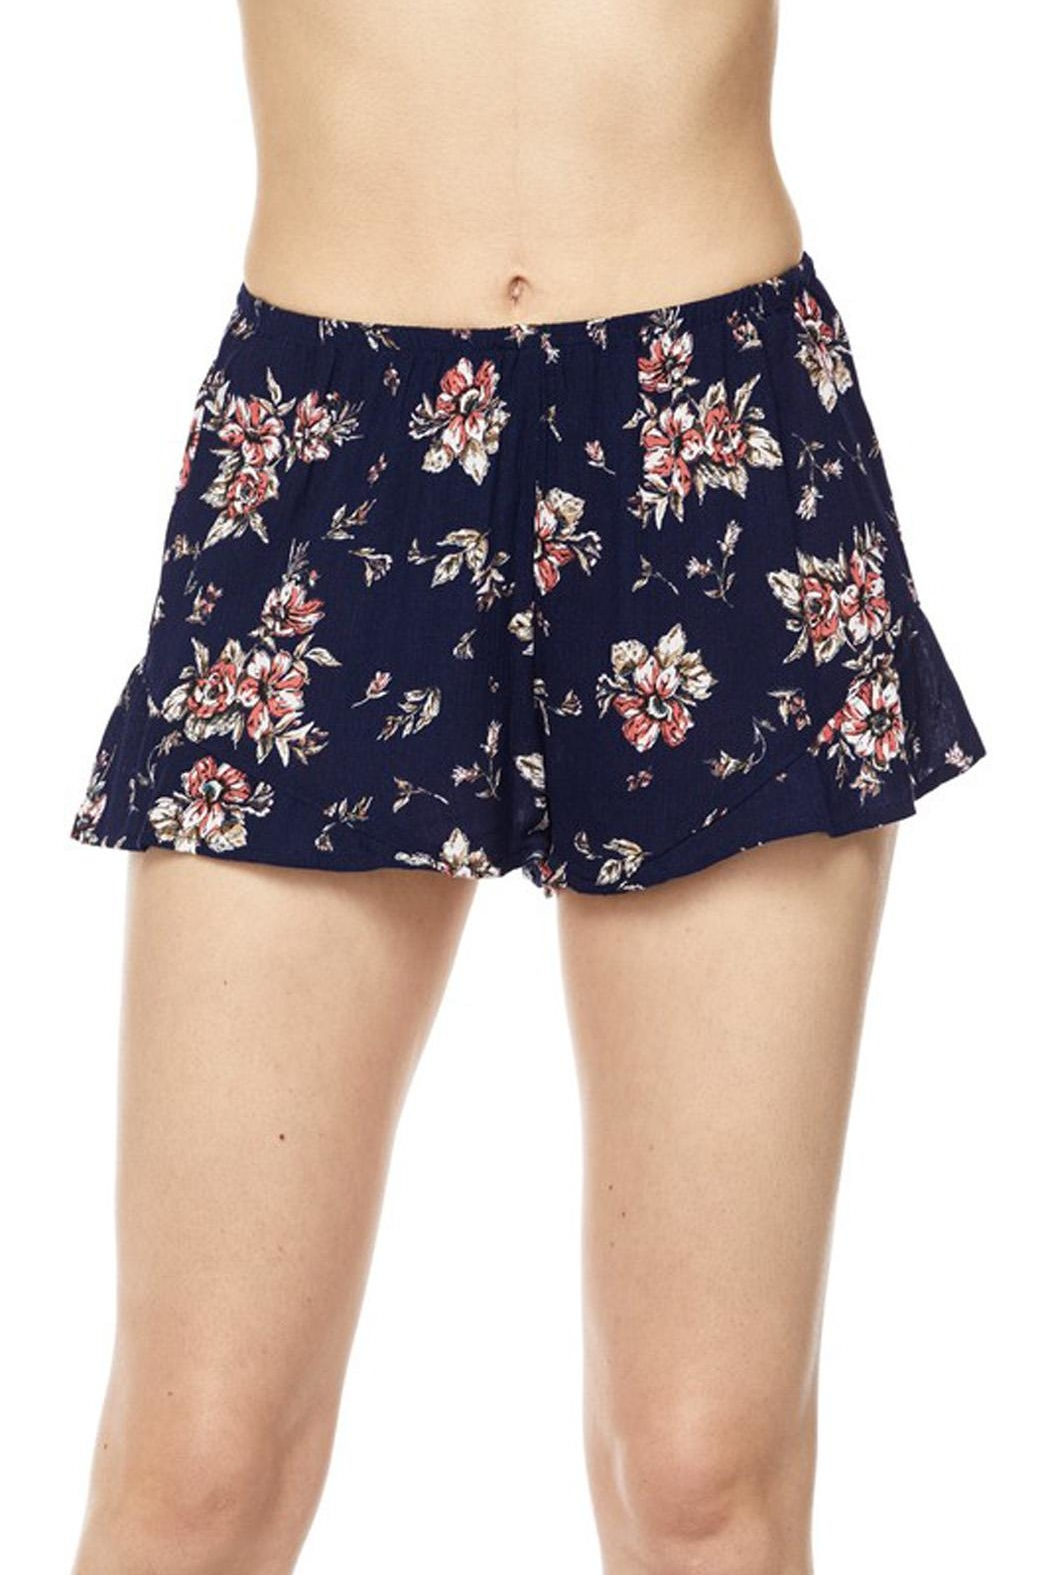 New Mix Chic Floral Short - Main Image